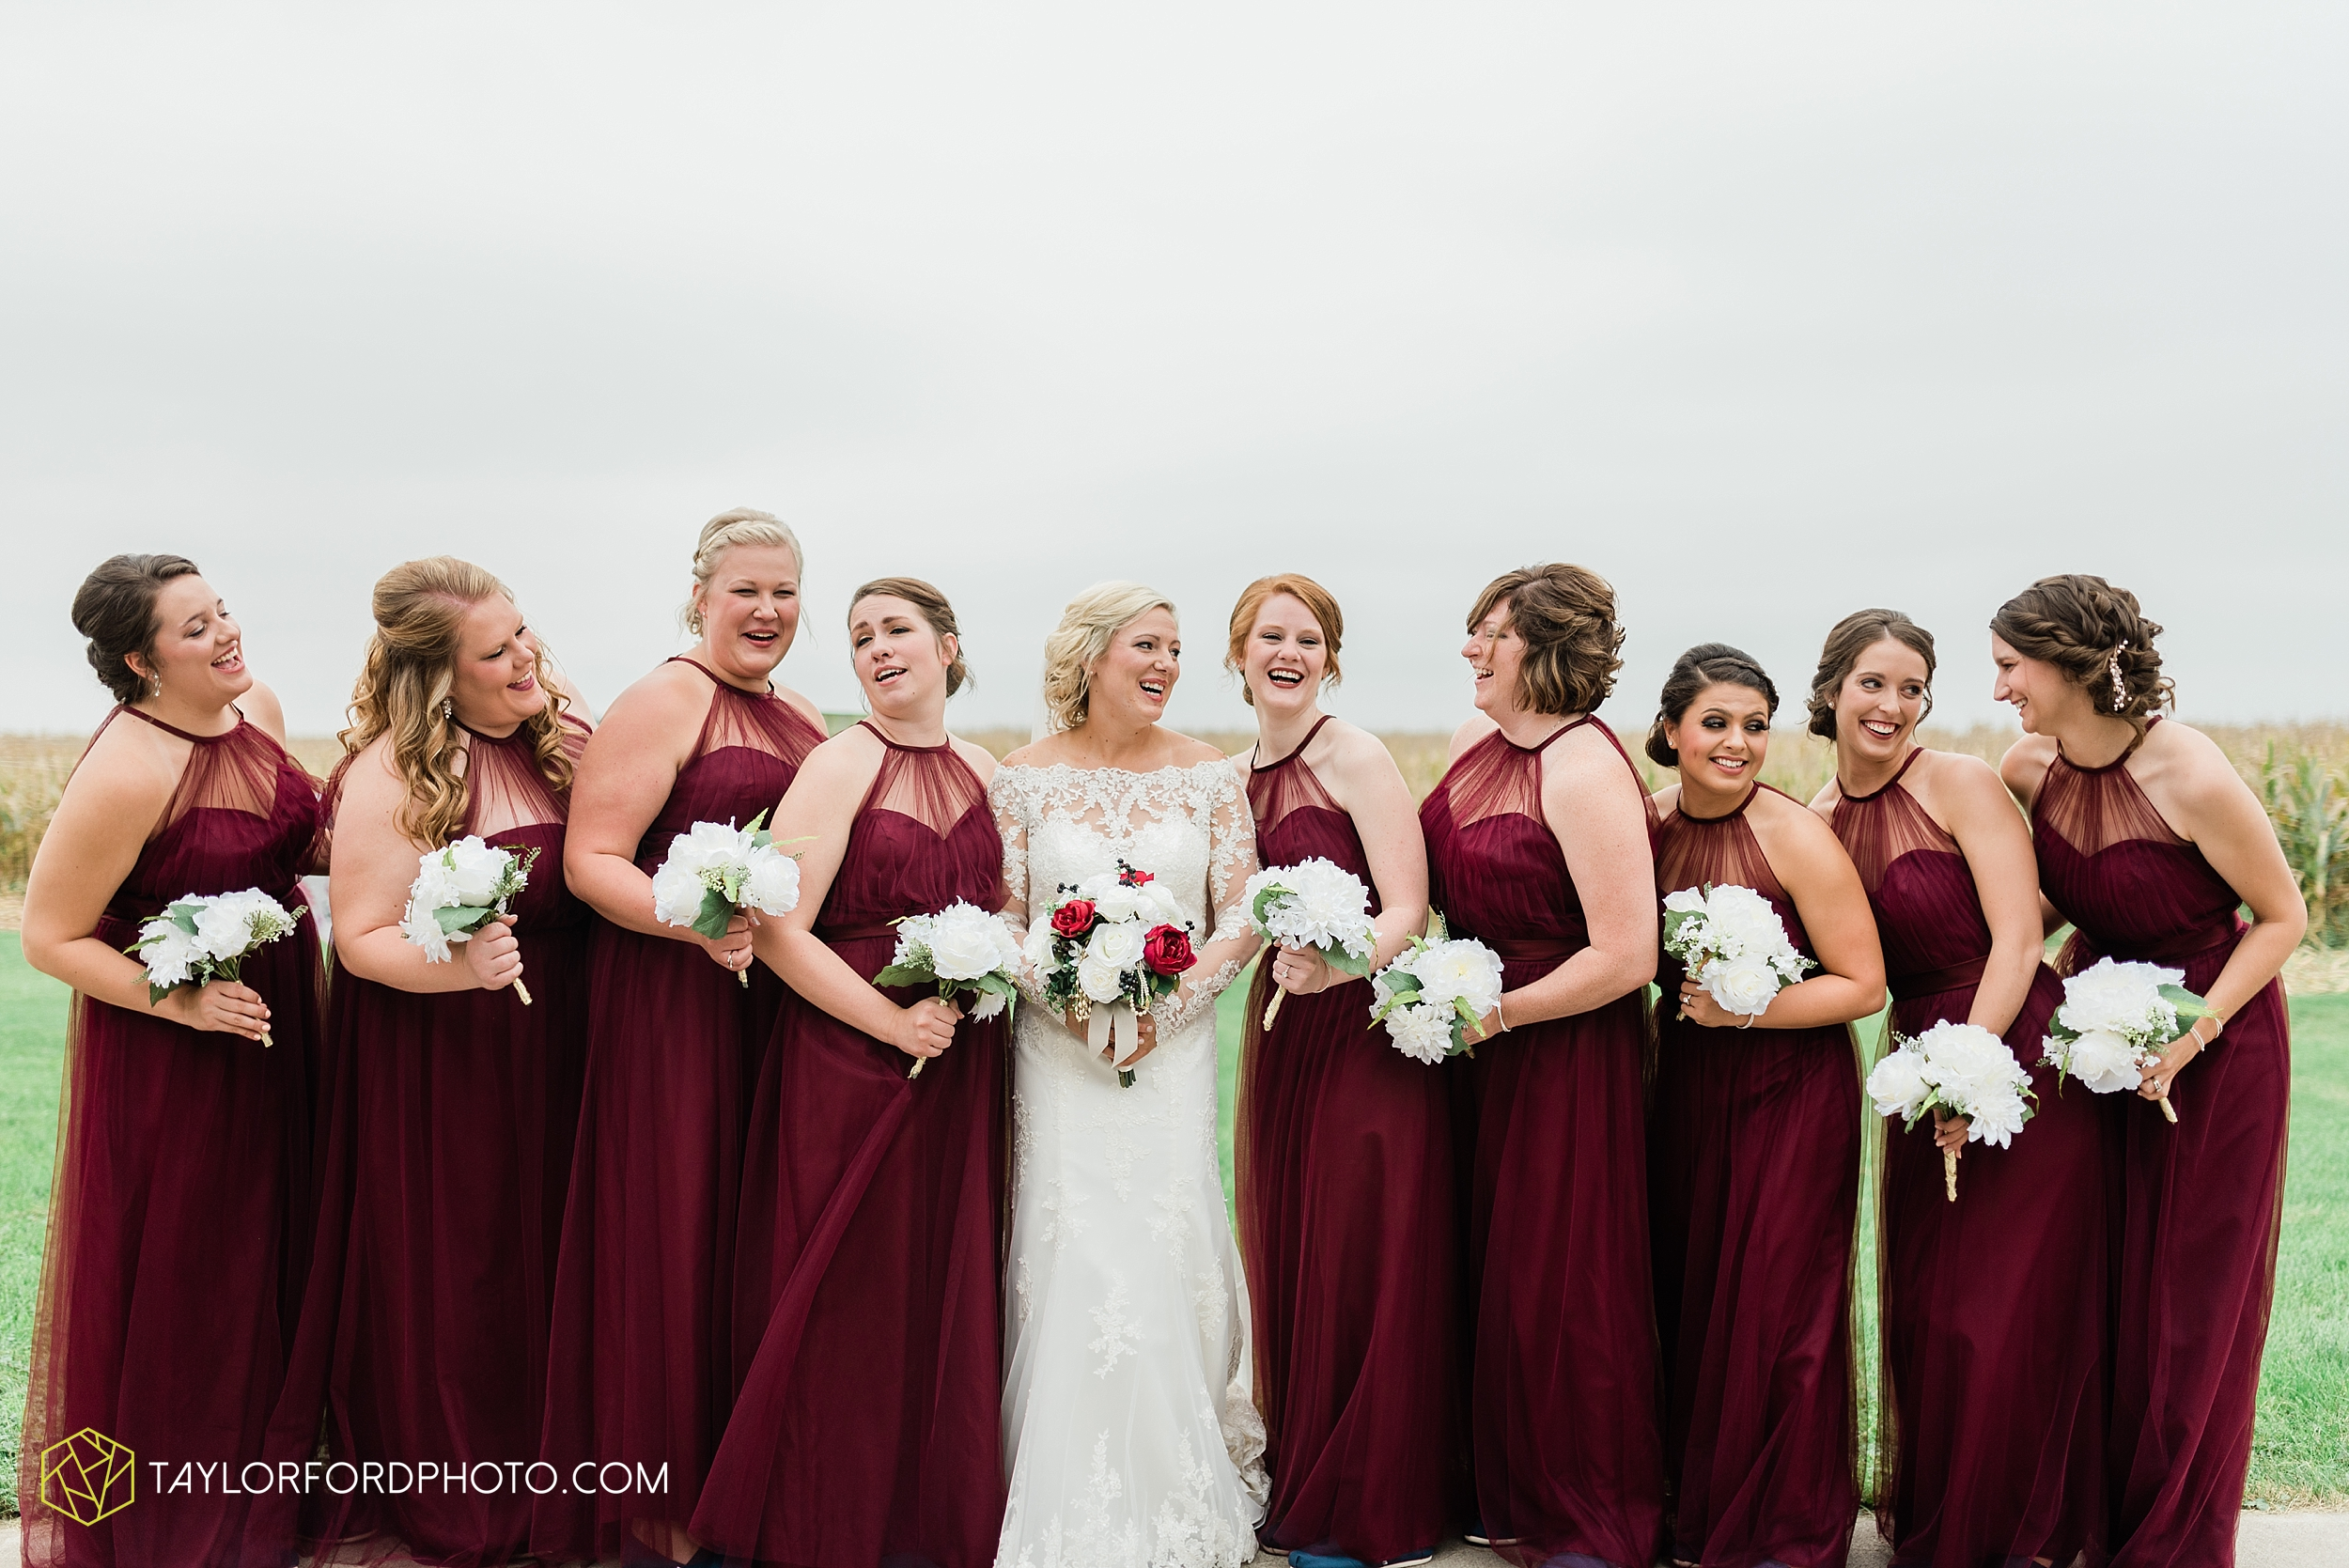 gayle-rayman-mike-steele-ottoville-ohio-wedding-immaculate-conception-parish-center-wedding-sycamore-lake-winery-wannamachers-photographer-taylor-ford-photography_0384.jpg